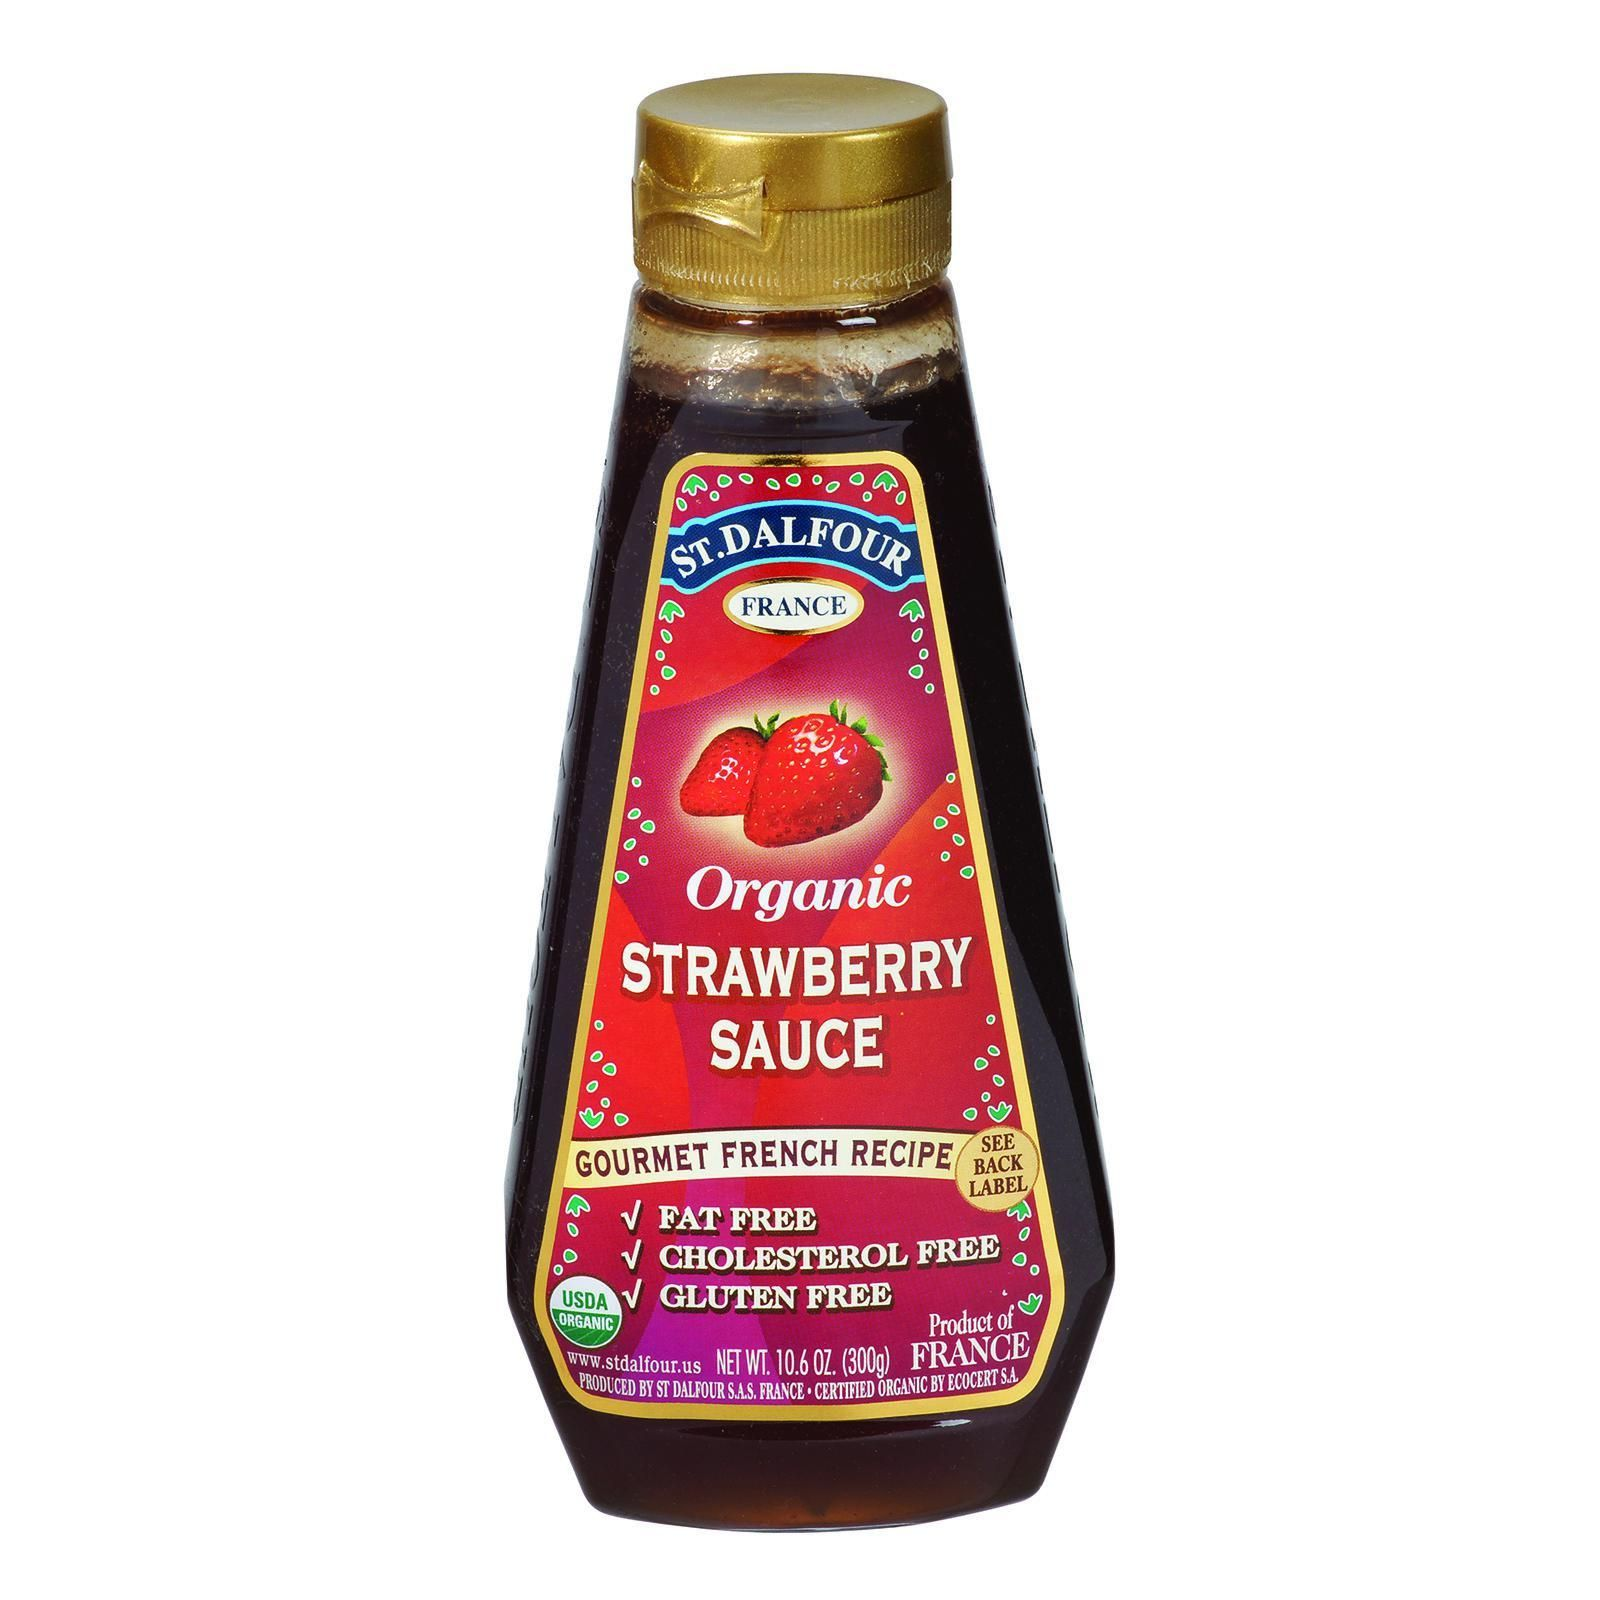 St Dalfour Organic Strawberry Sauce - 10.6 oz - Case of 6